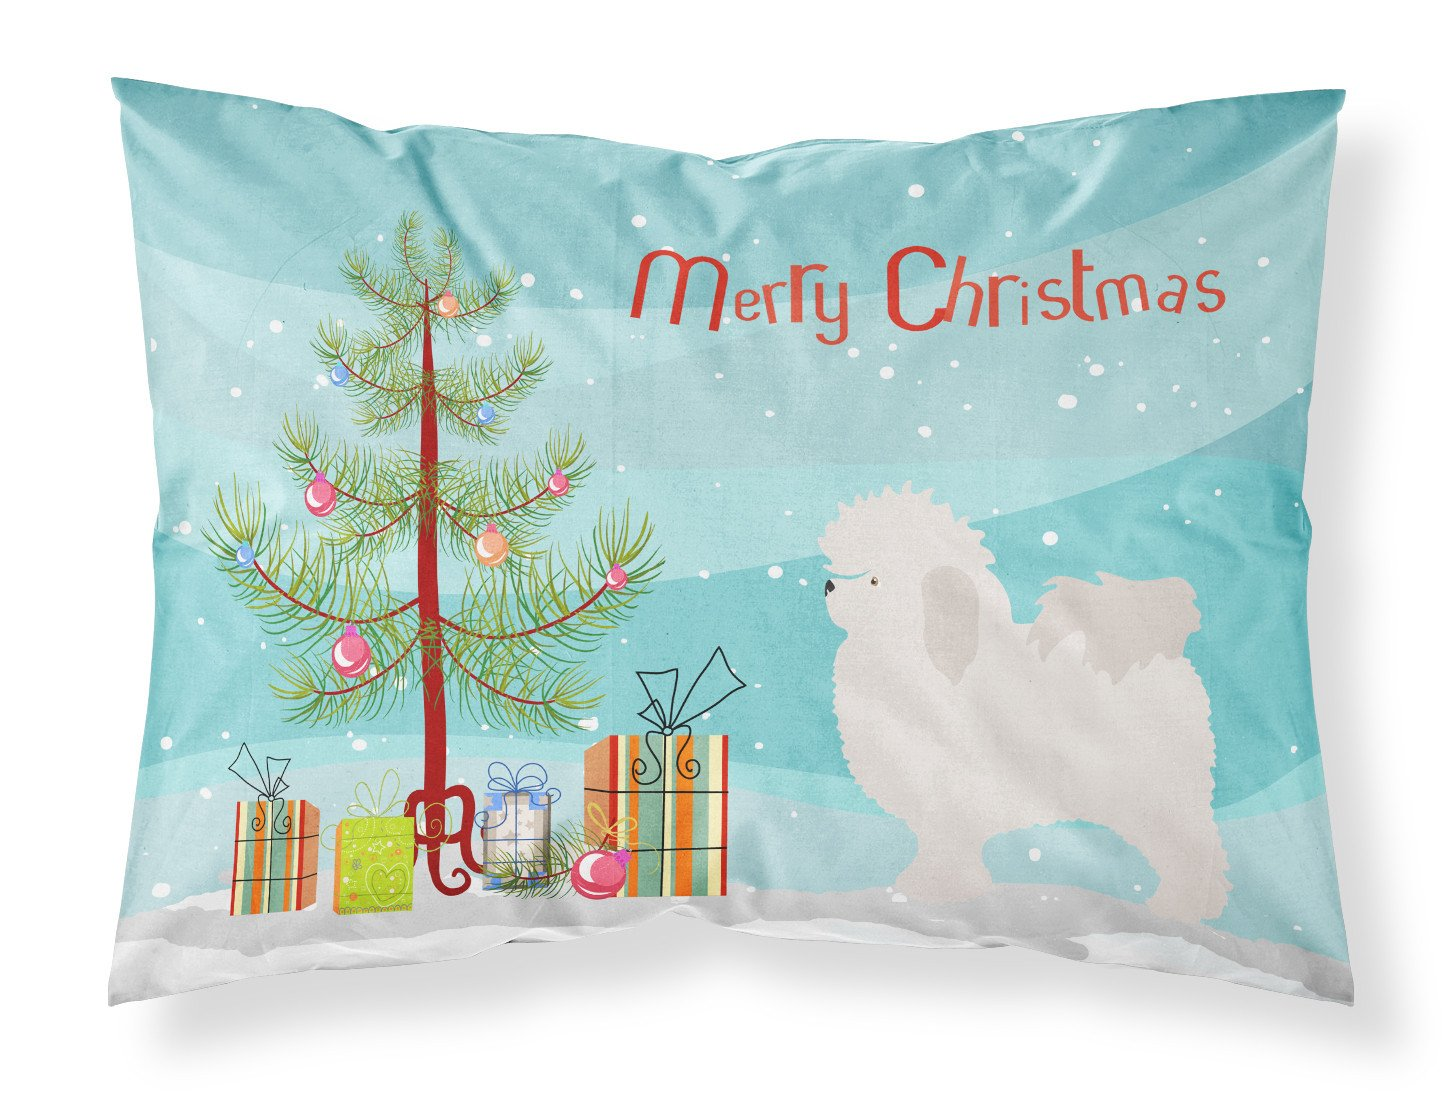 Bolognese Christmas Fabric Standard Pillowcase BB8471PILLOWCASE by Caroline's Treasures